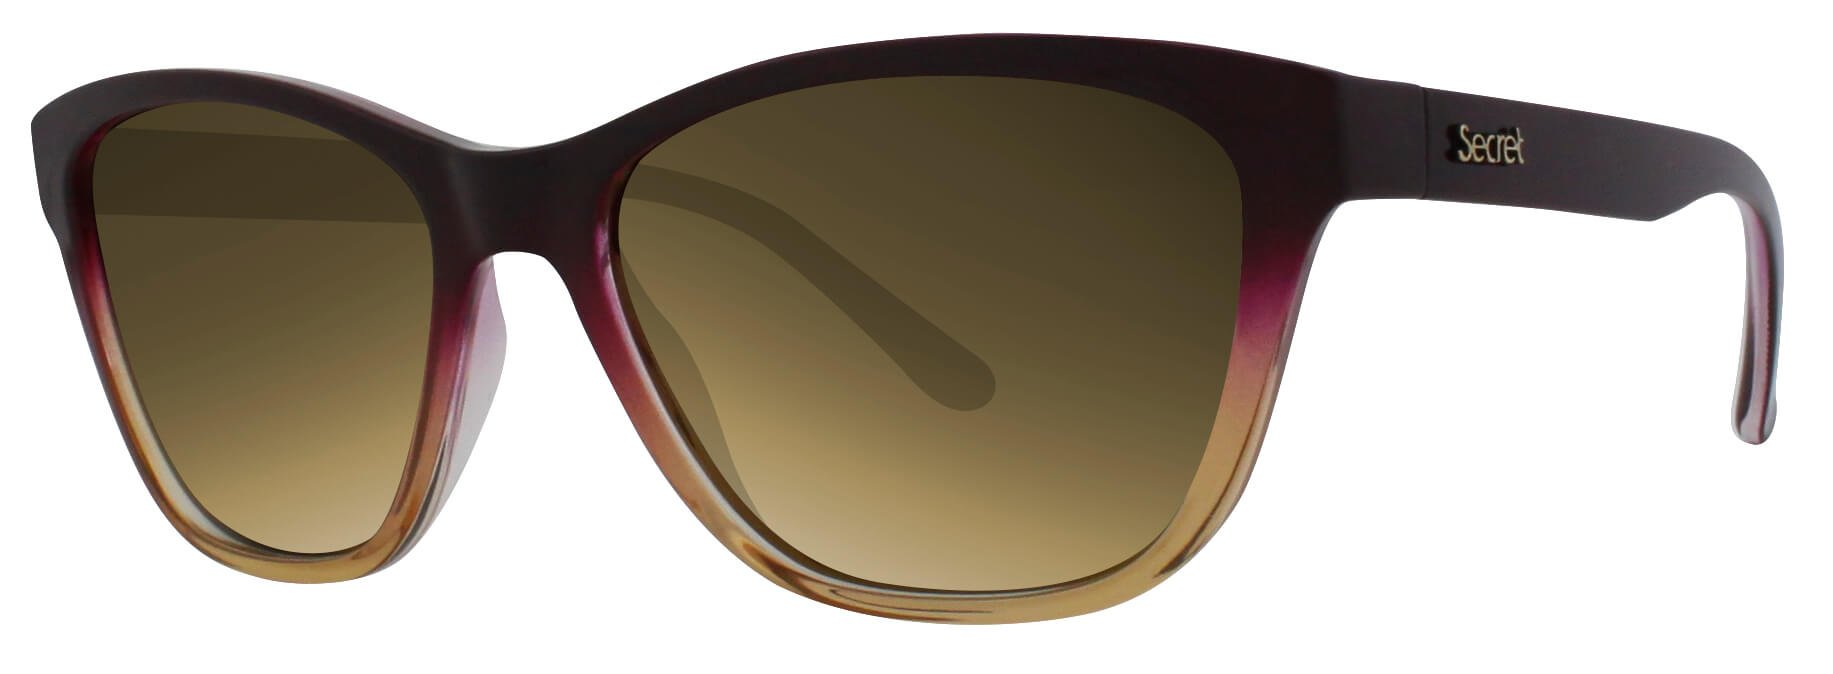 ÓC SECRET NARA FADE PASSIONATE/YELLOW / POLARIZED BROWN